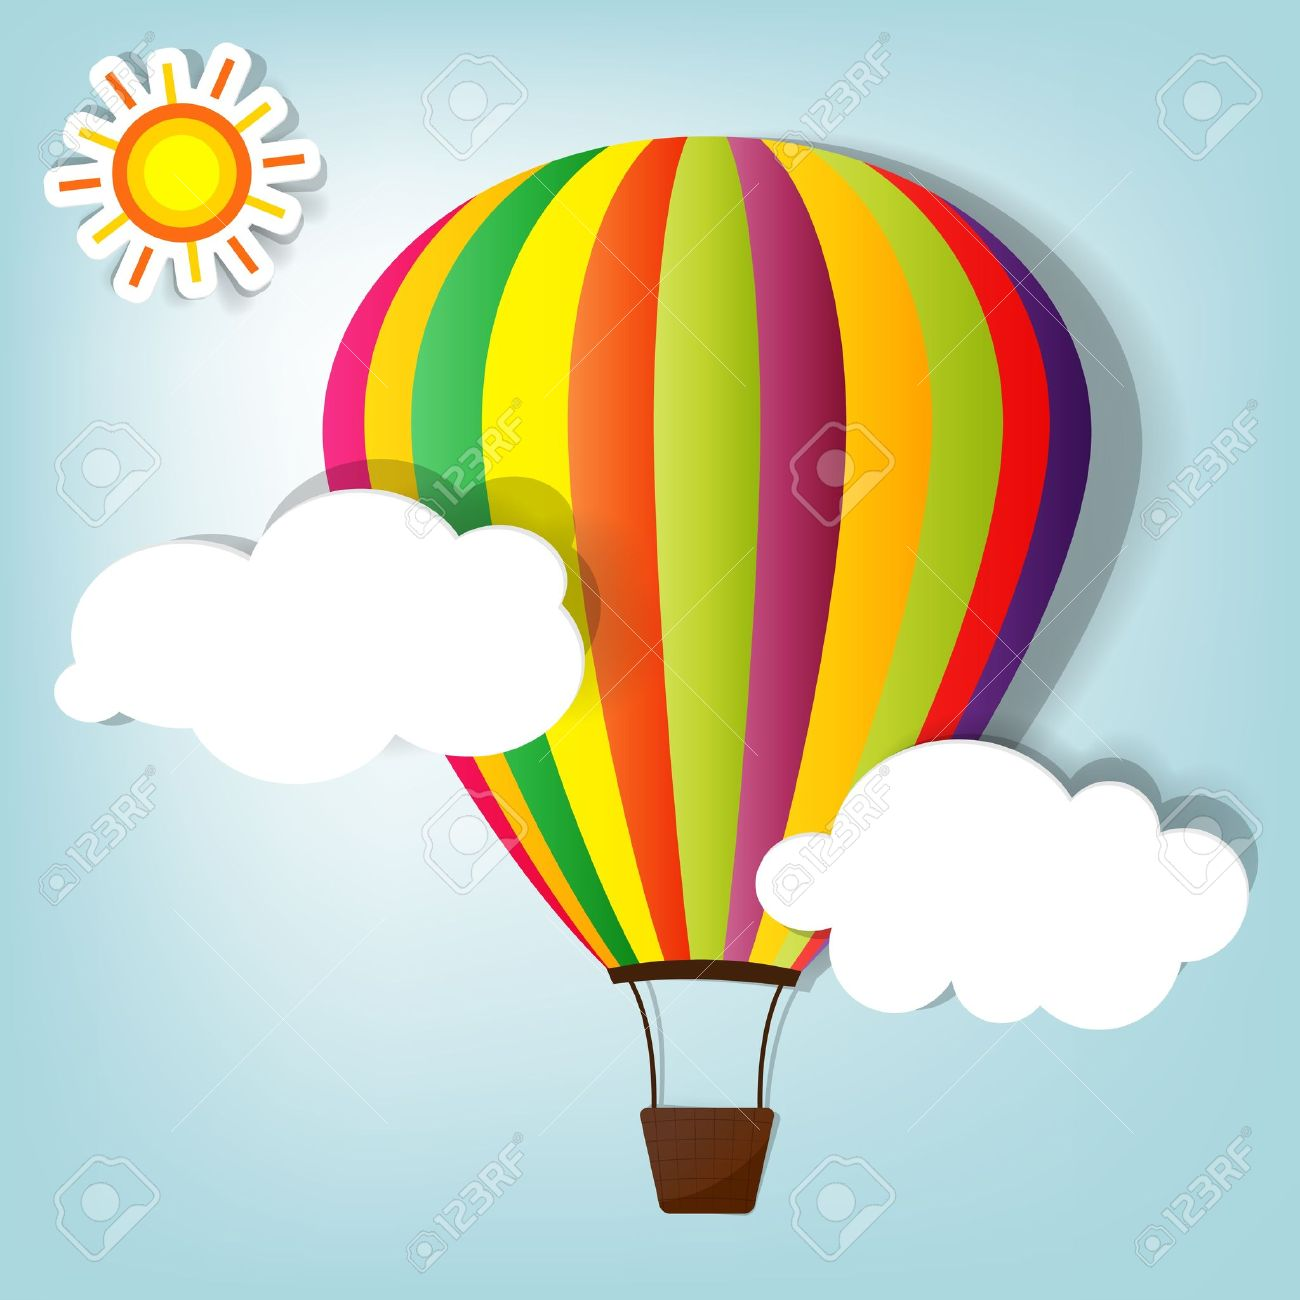 vector illustration with hot air balloon in the sky - 11620550